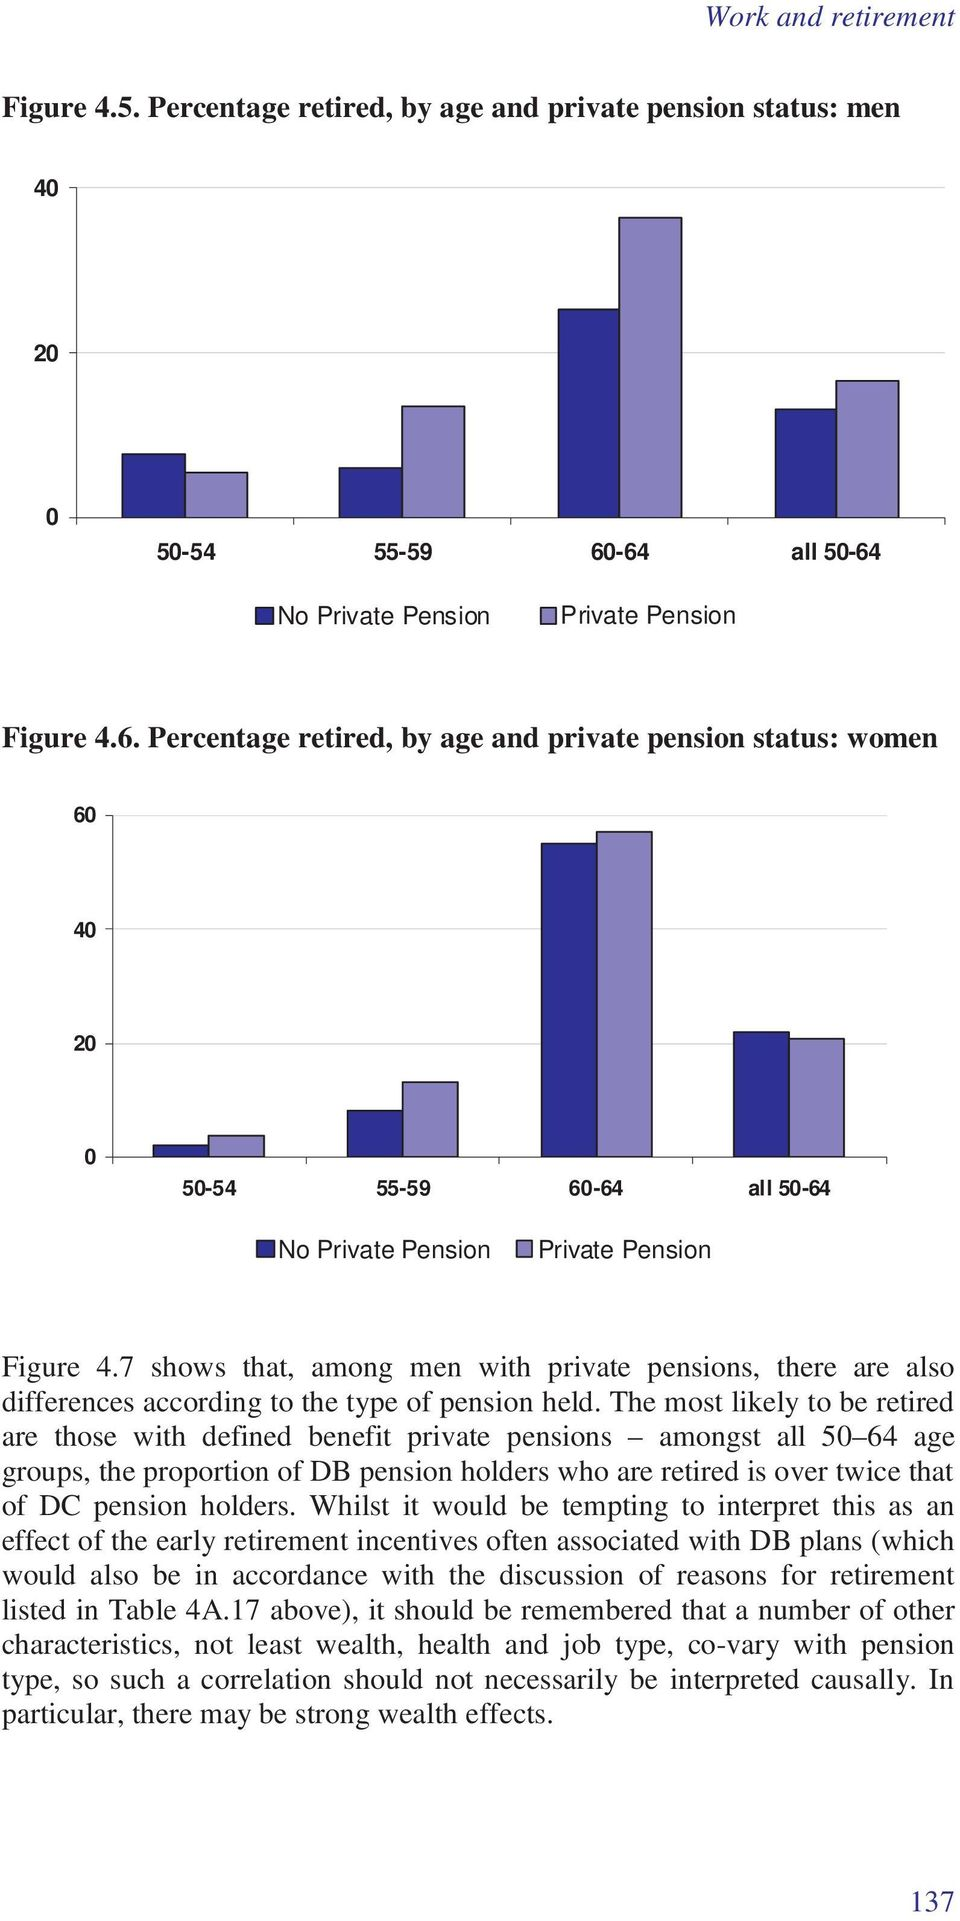 7 shows that, among men with private pensions, there are also differences according to the type of pension held.